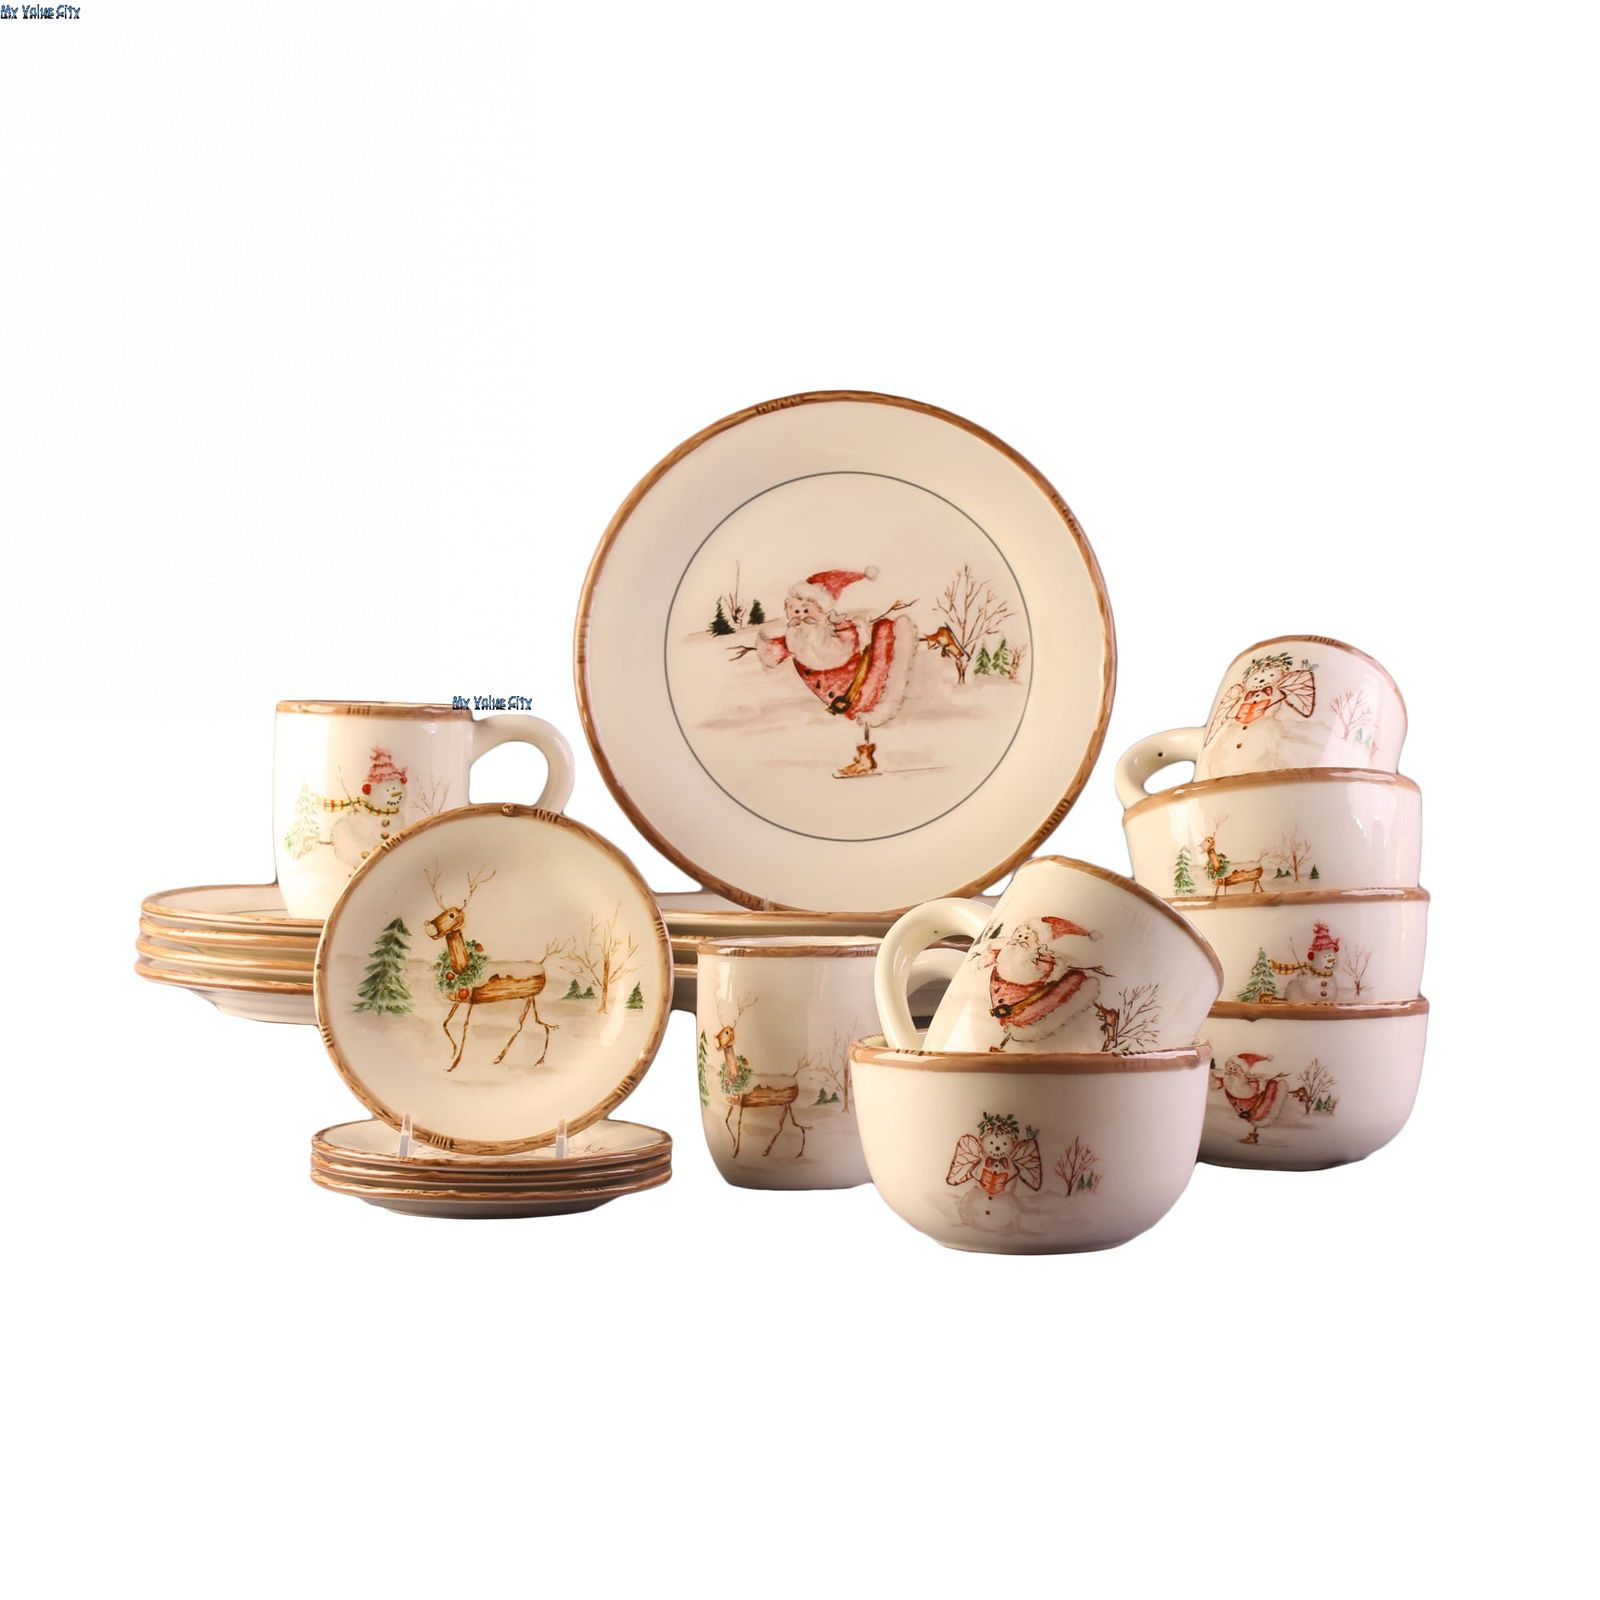 Details About American Atelier Christmas 20 Piece Dinner Set Christmas Dinnerware Sets Christmas Dinnerware Holiday Dinnerware